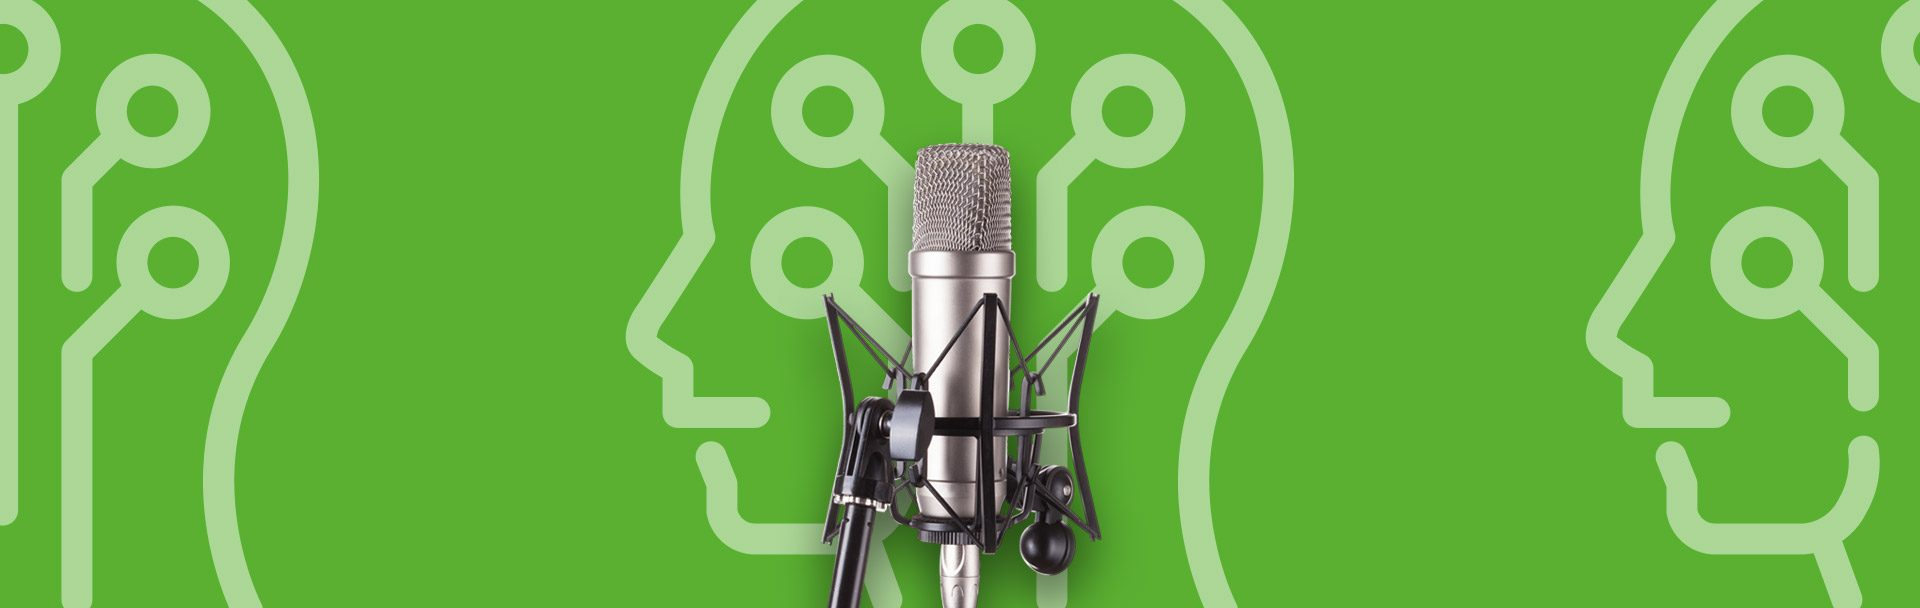 Podcast: Fraudedetectie – de use cases en algoritmes - Hot ITem